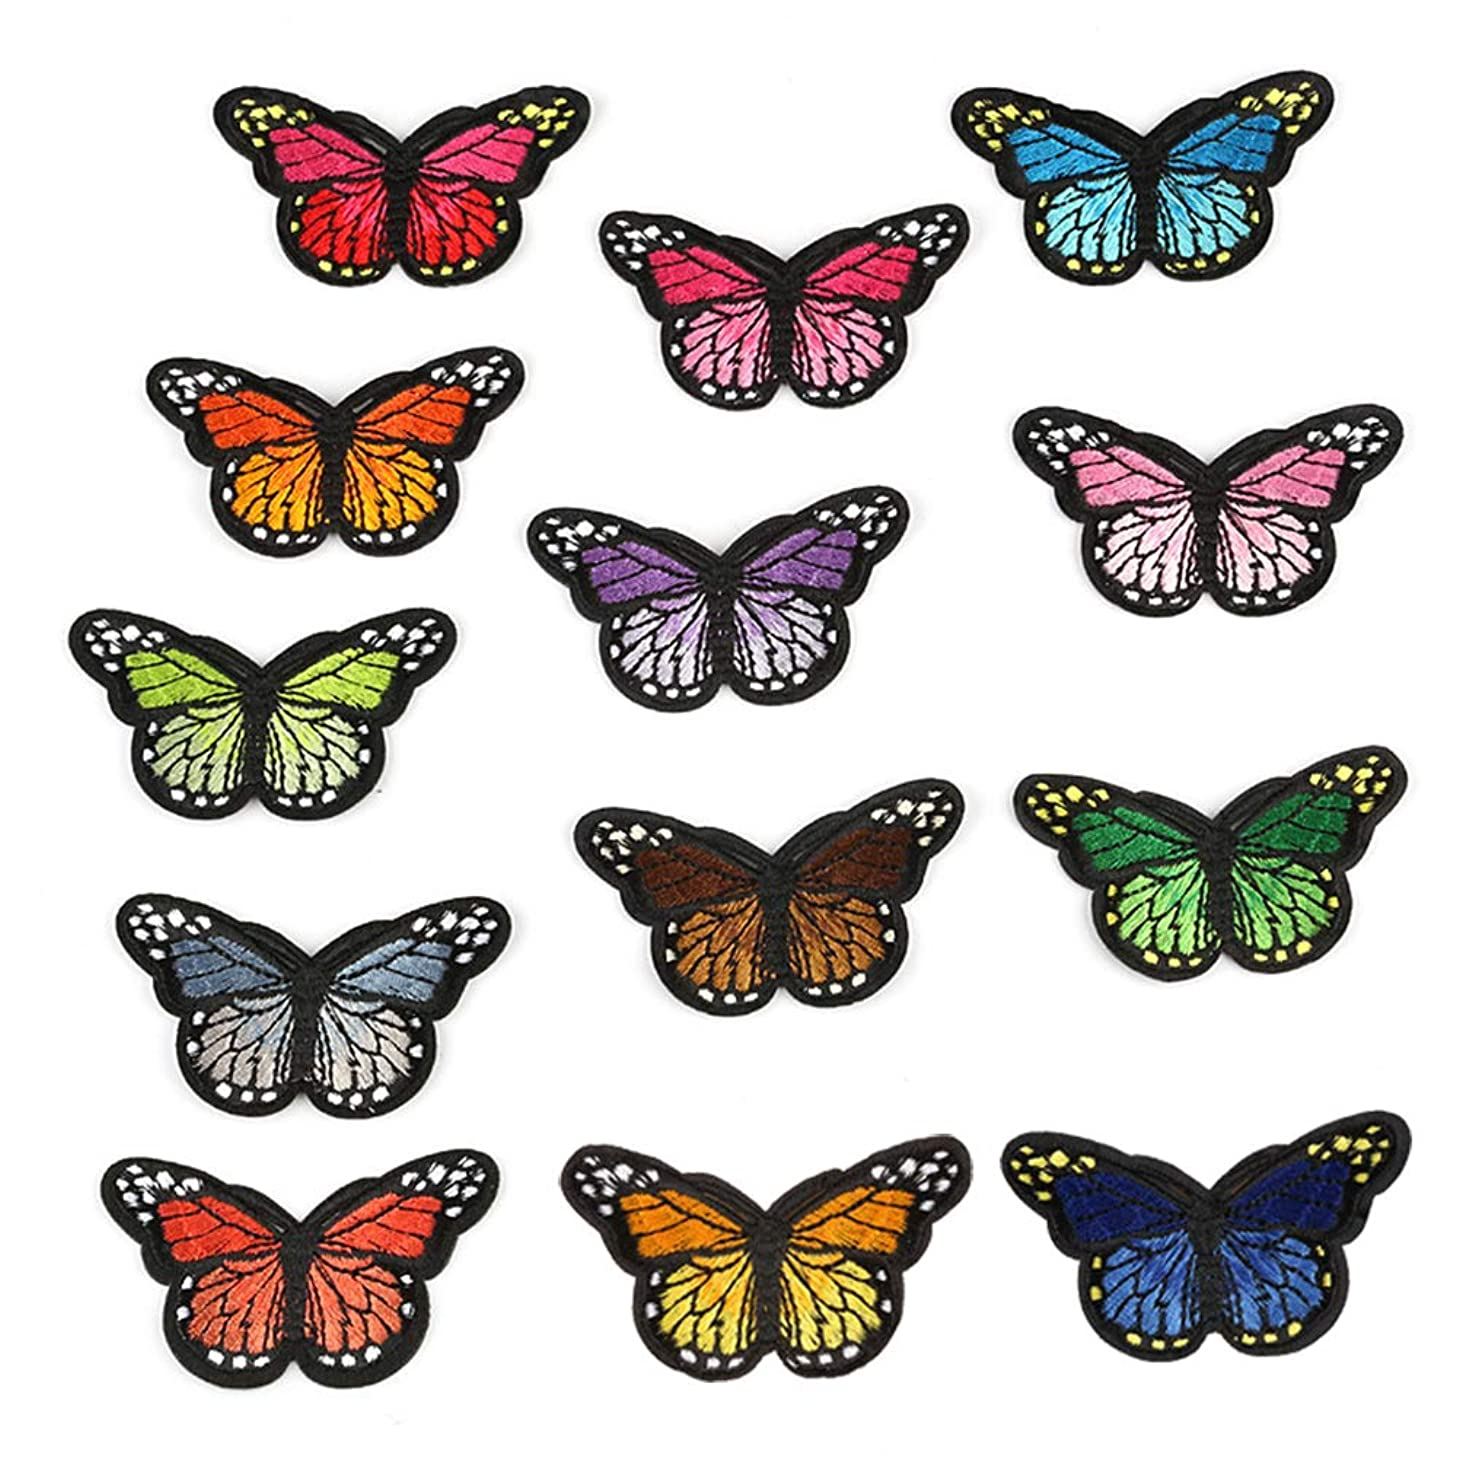 Iron on Patch Glitter Sequin Patches, 13 Pieces DIY Butterfly Patterns Sew On Patches Applique for Clothes Jackets T-Shirt Jeans Skirt Vests Scarf Hat Bag